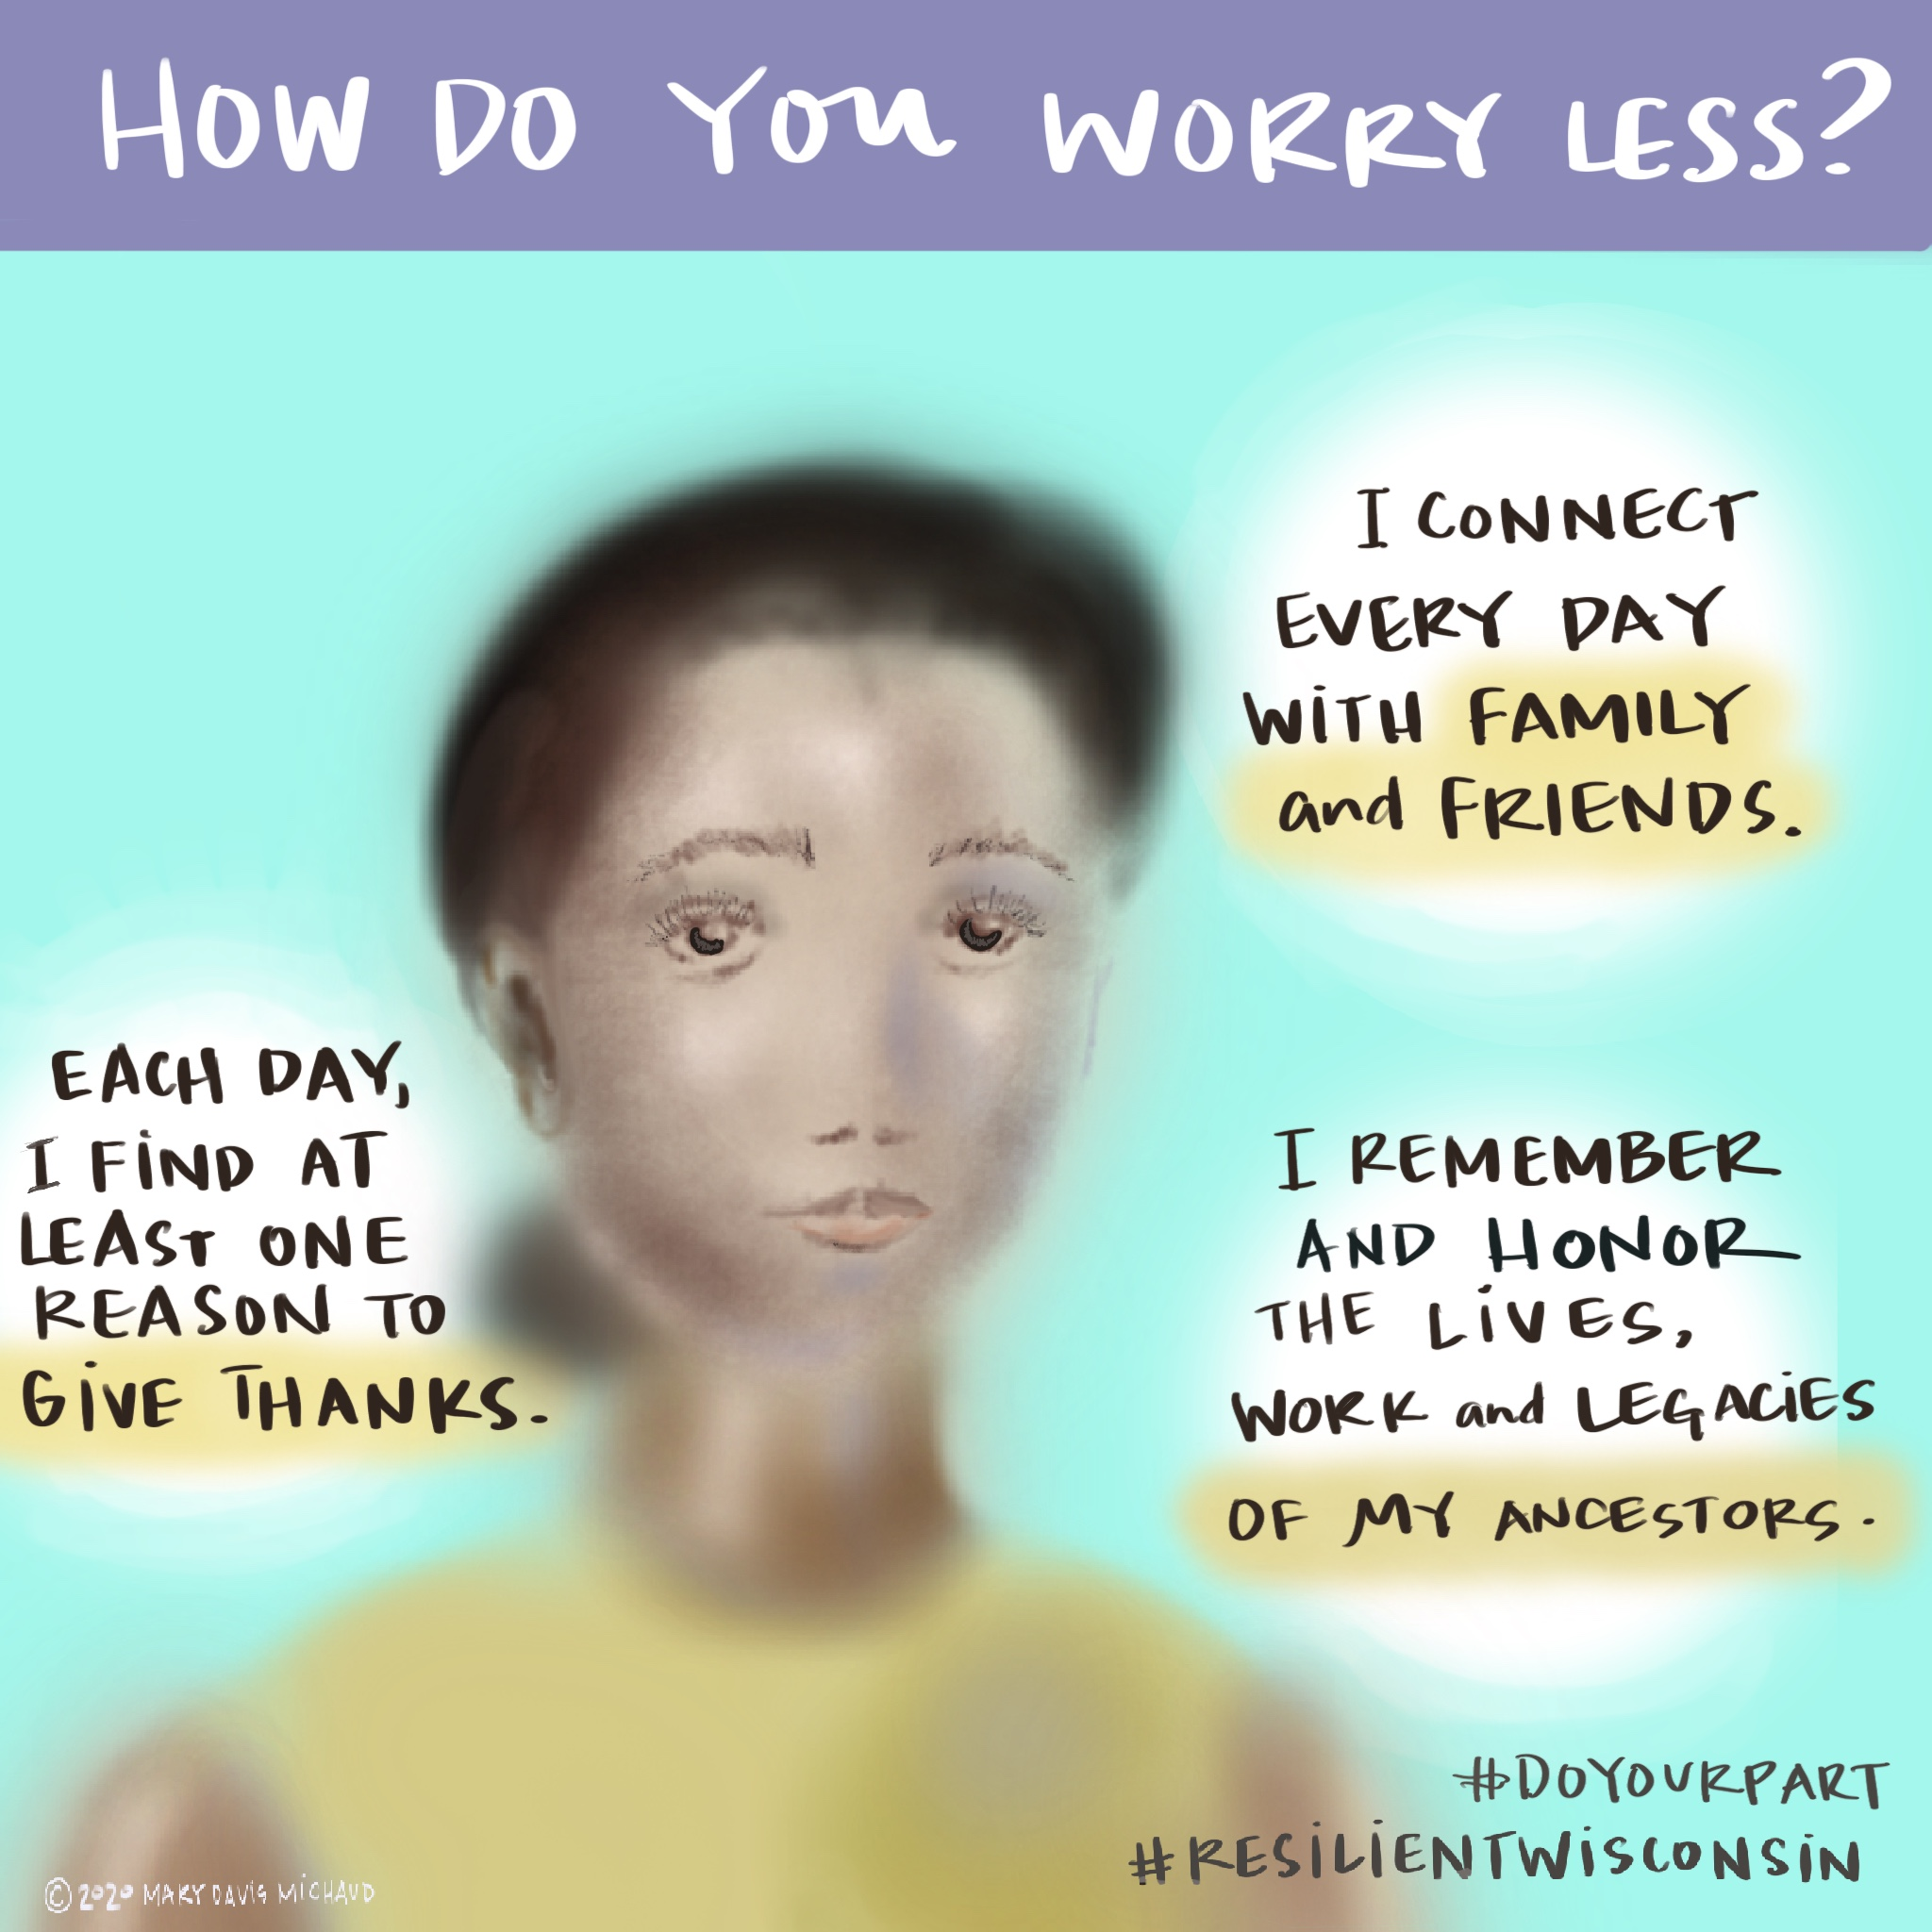 Shows a women's face and shoulders with words around her about how to worry less.